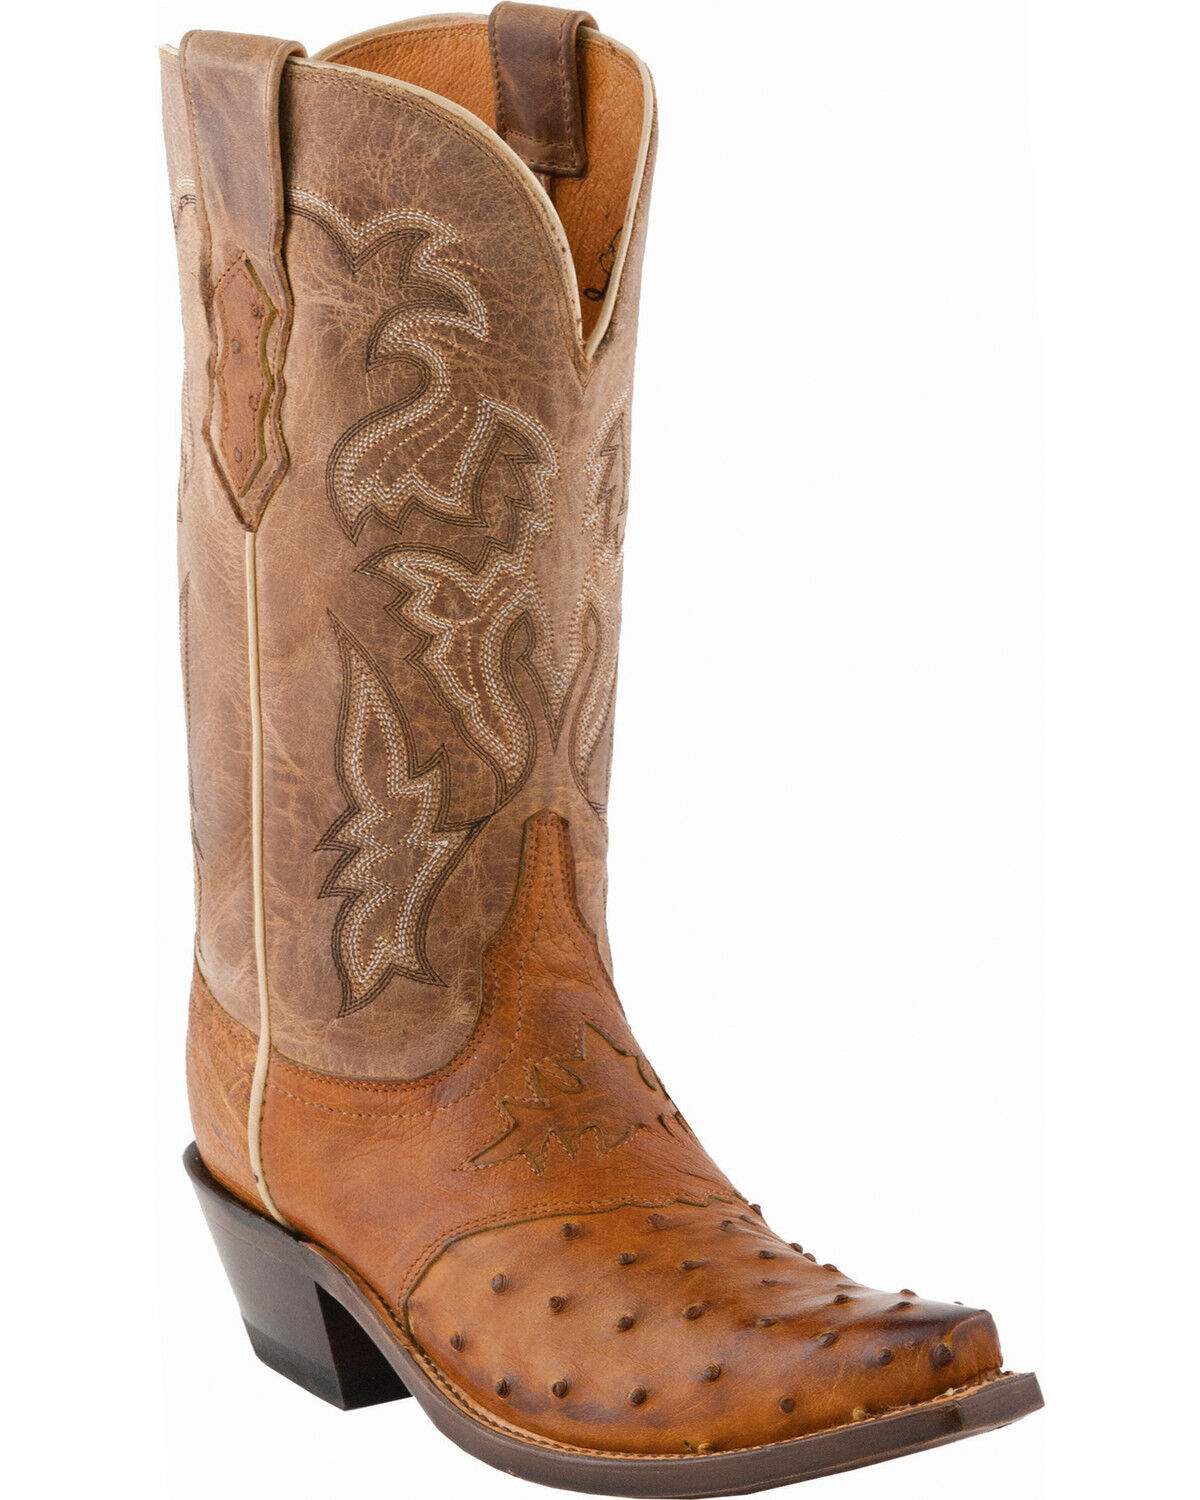 Lucchese Bootmaker Mens Fisher Western Boot Barrel Brown//tan Burnished 8 D US